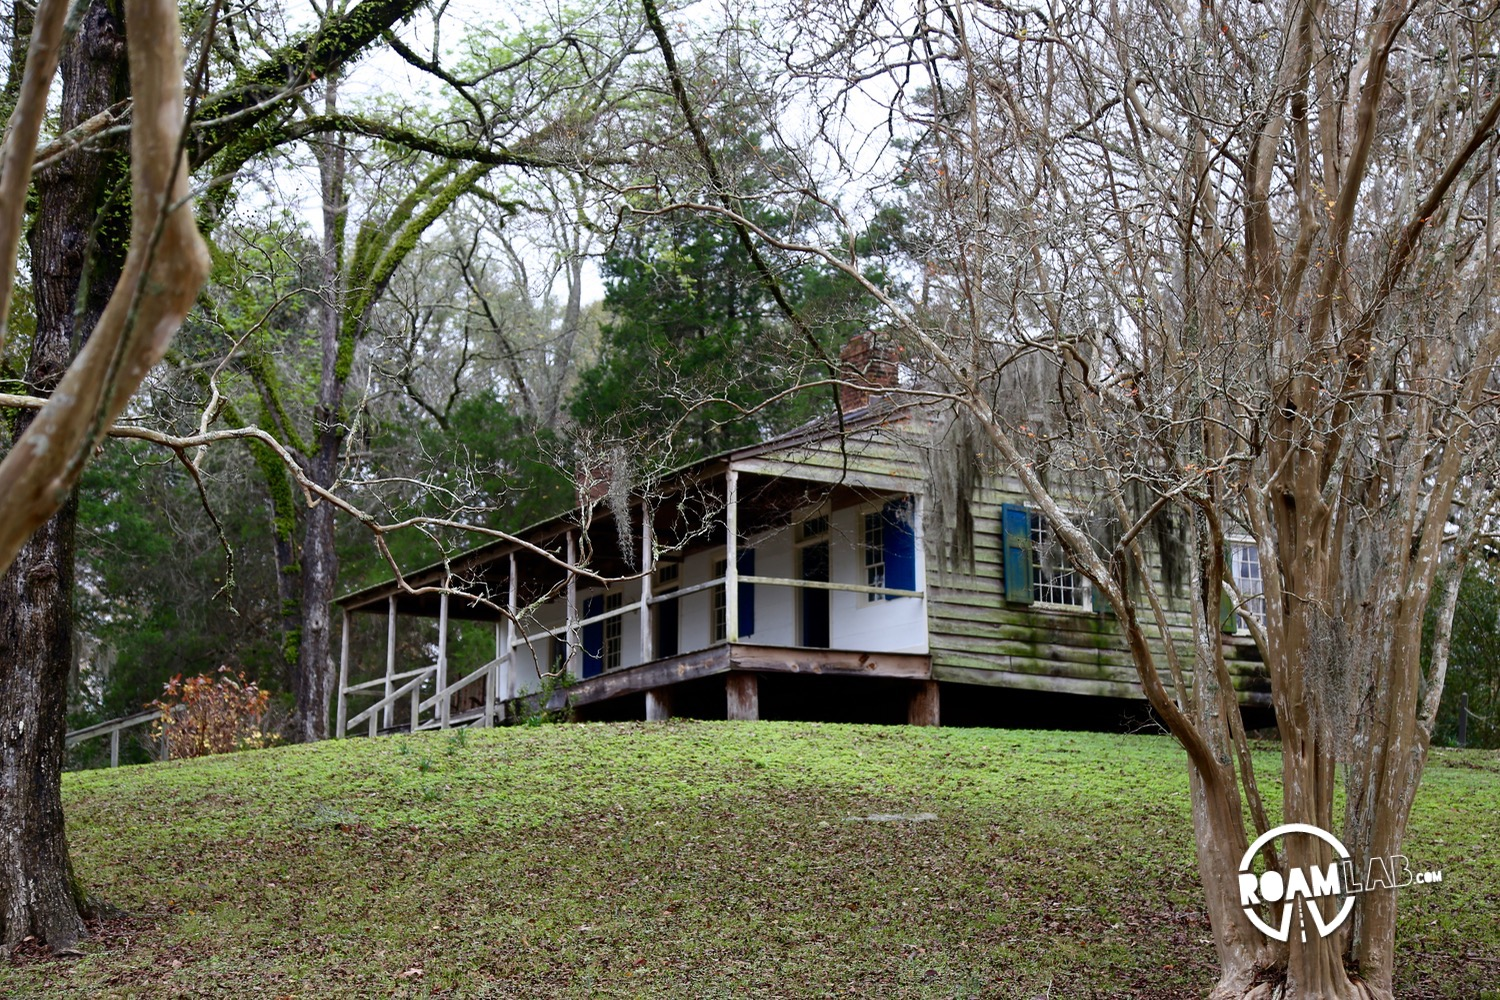 Mount Locust Inn is one of the few remaining stands along the Natchez Trace.